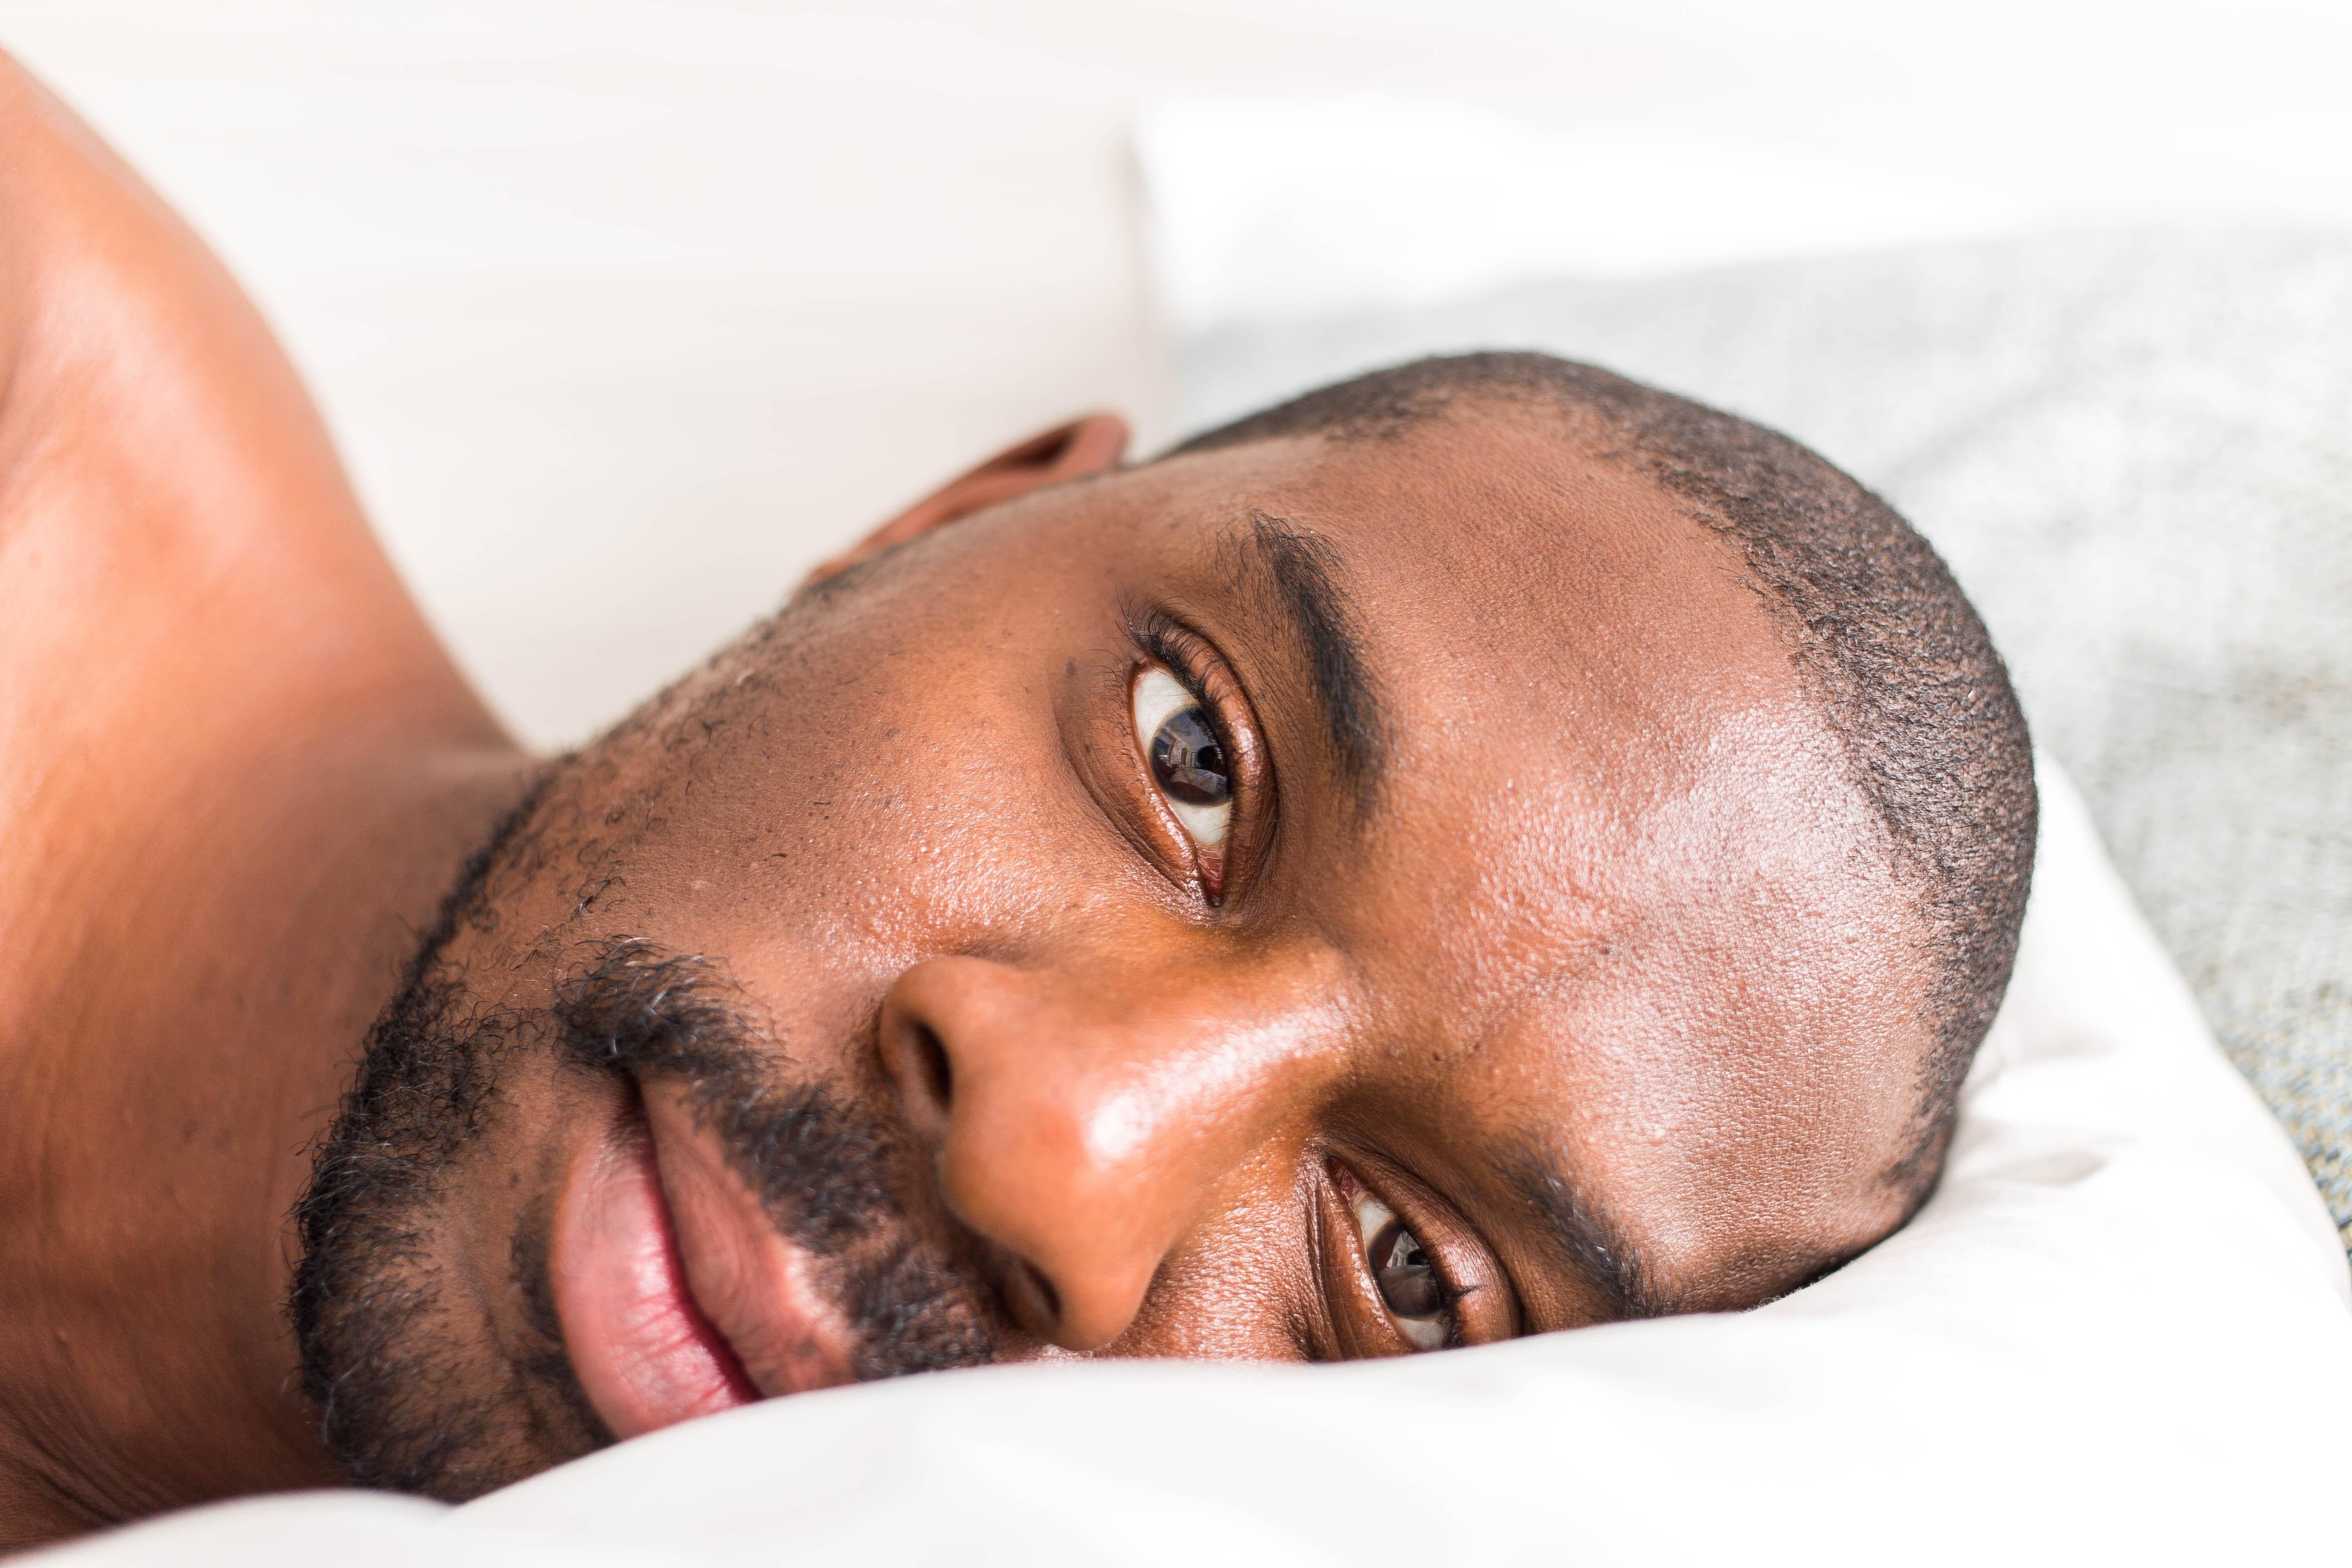 man lying down on bed